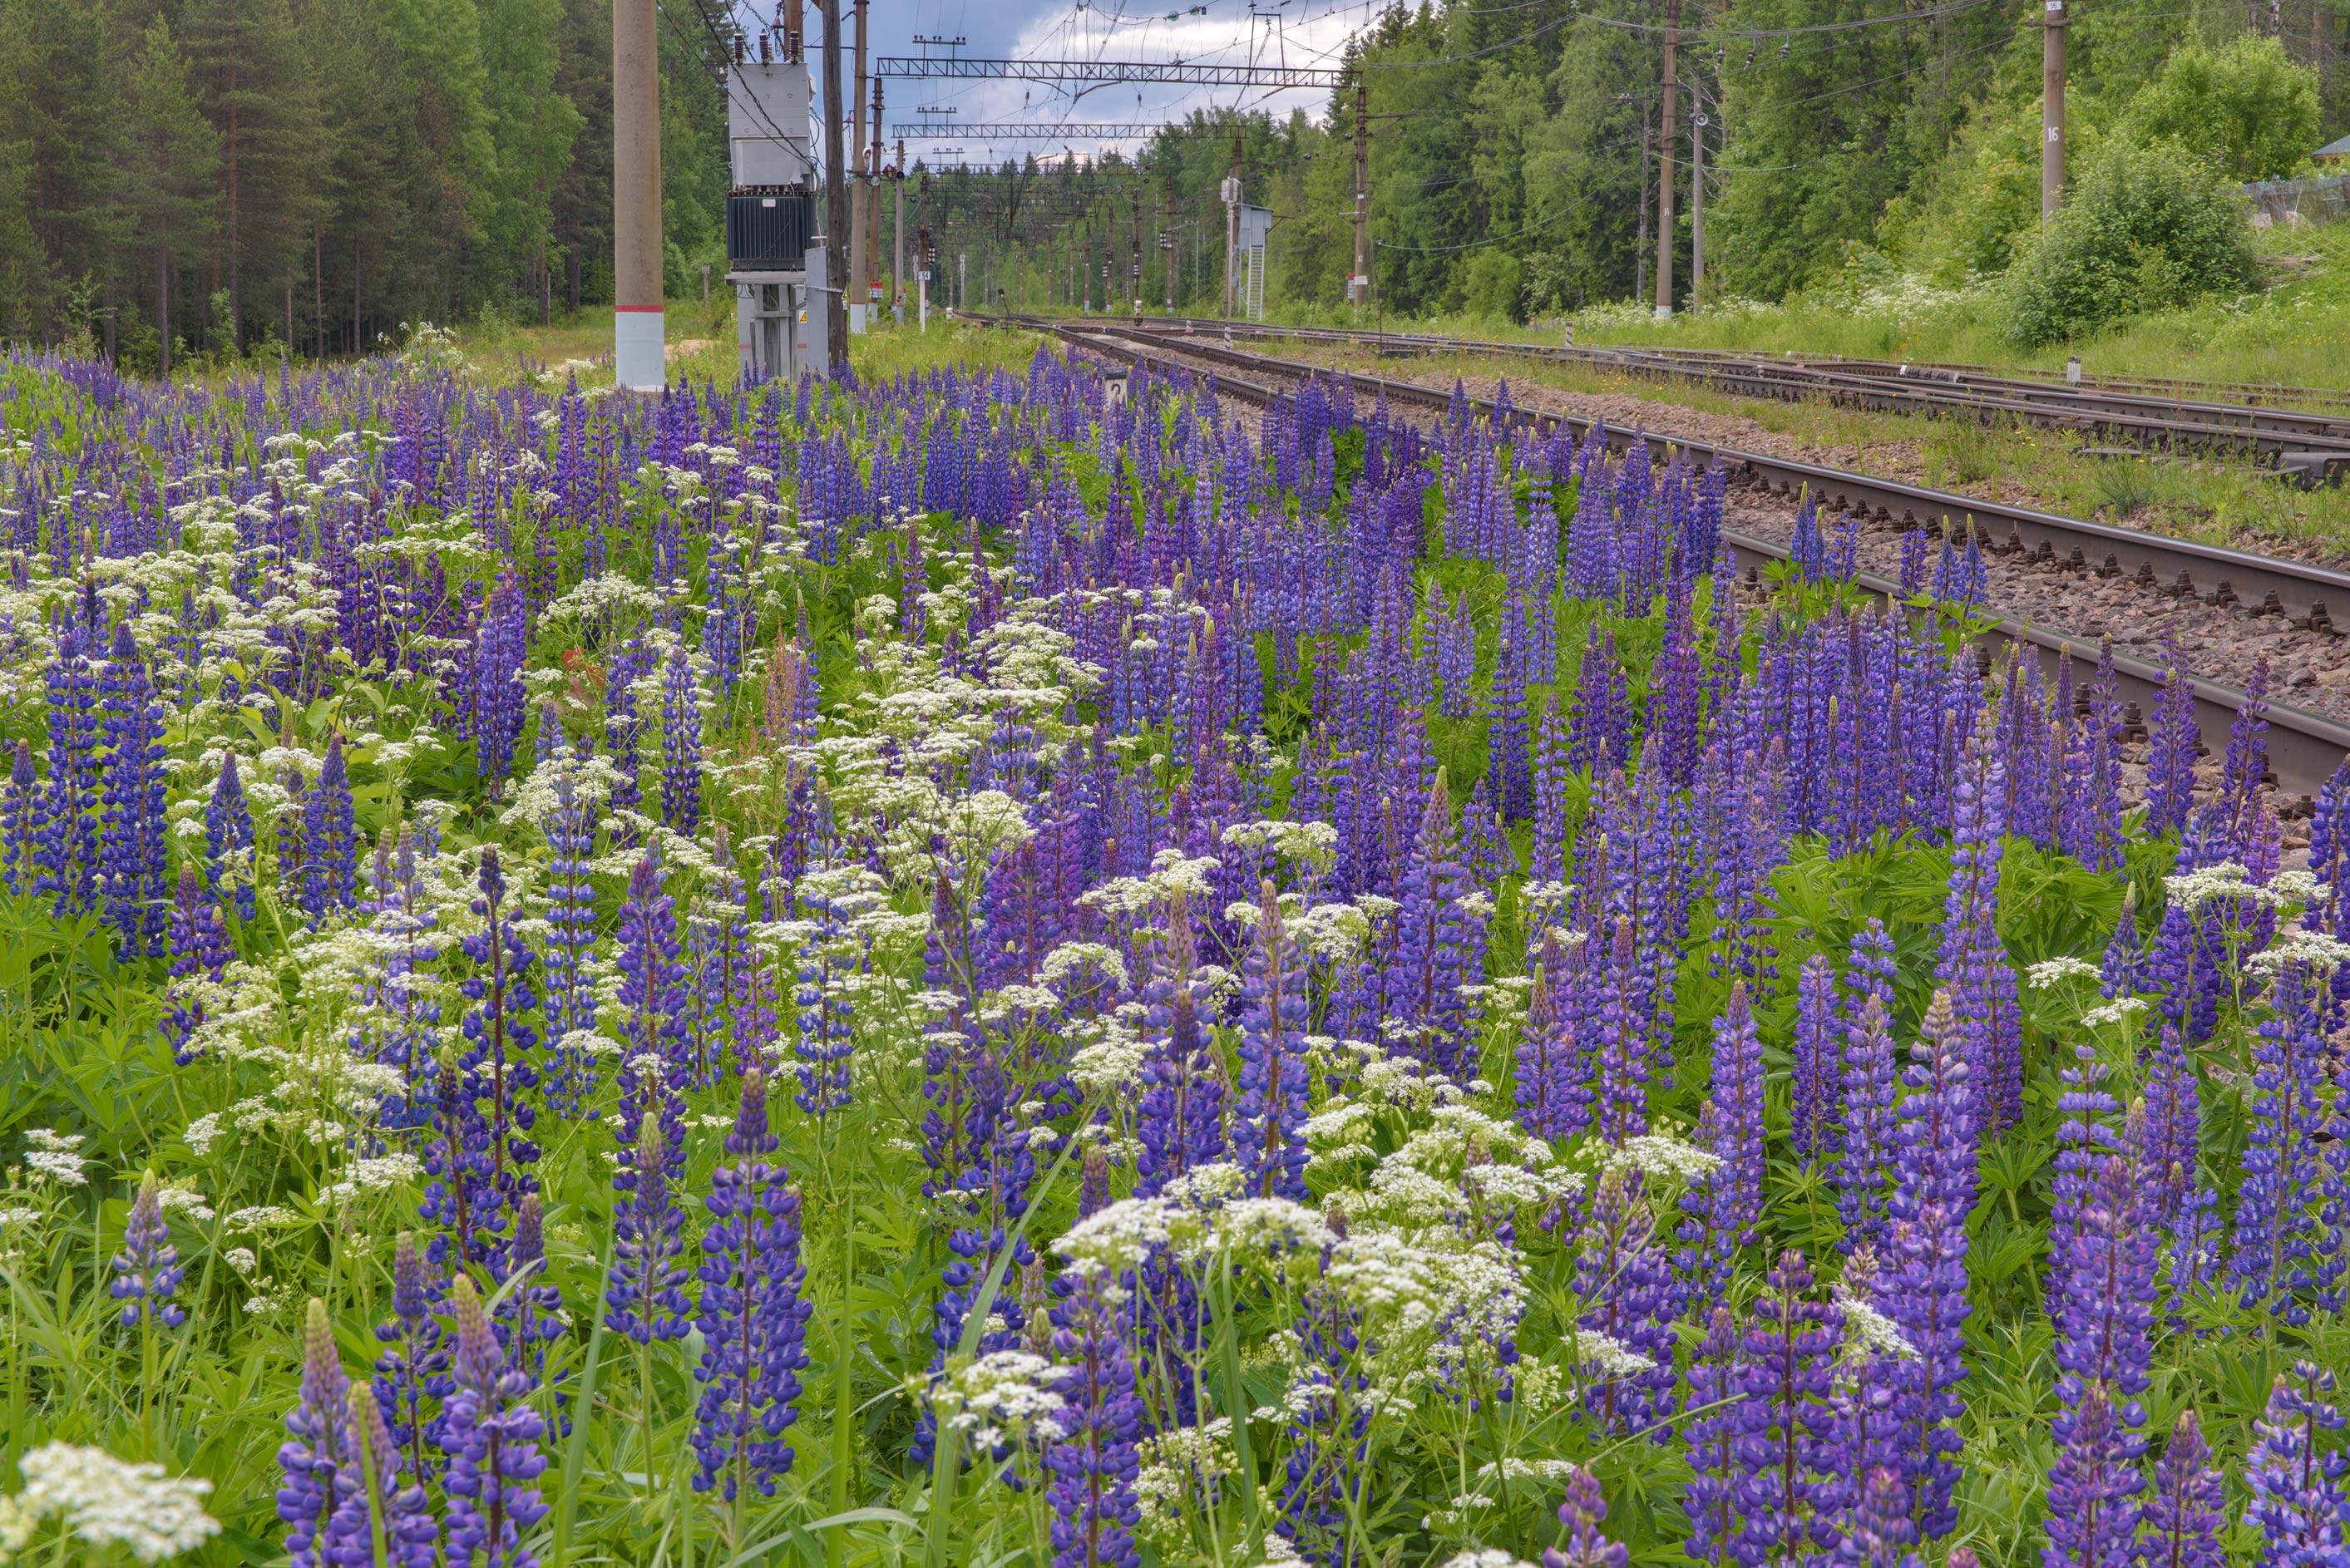 Blue lupin (Lupinus) in bloom near Orekhovo, north from St.Petersburg. Russia